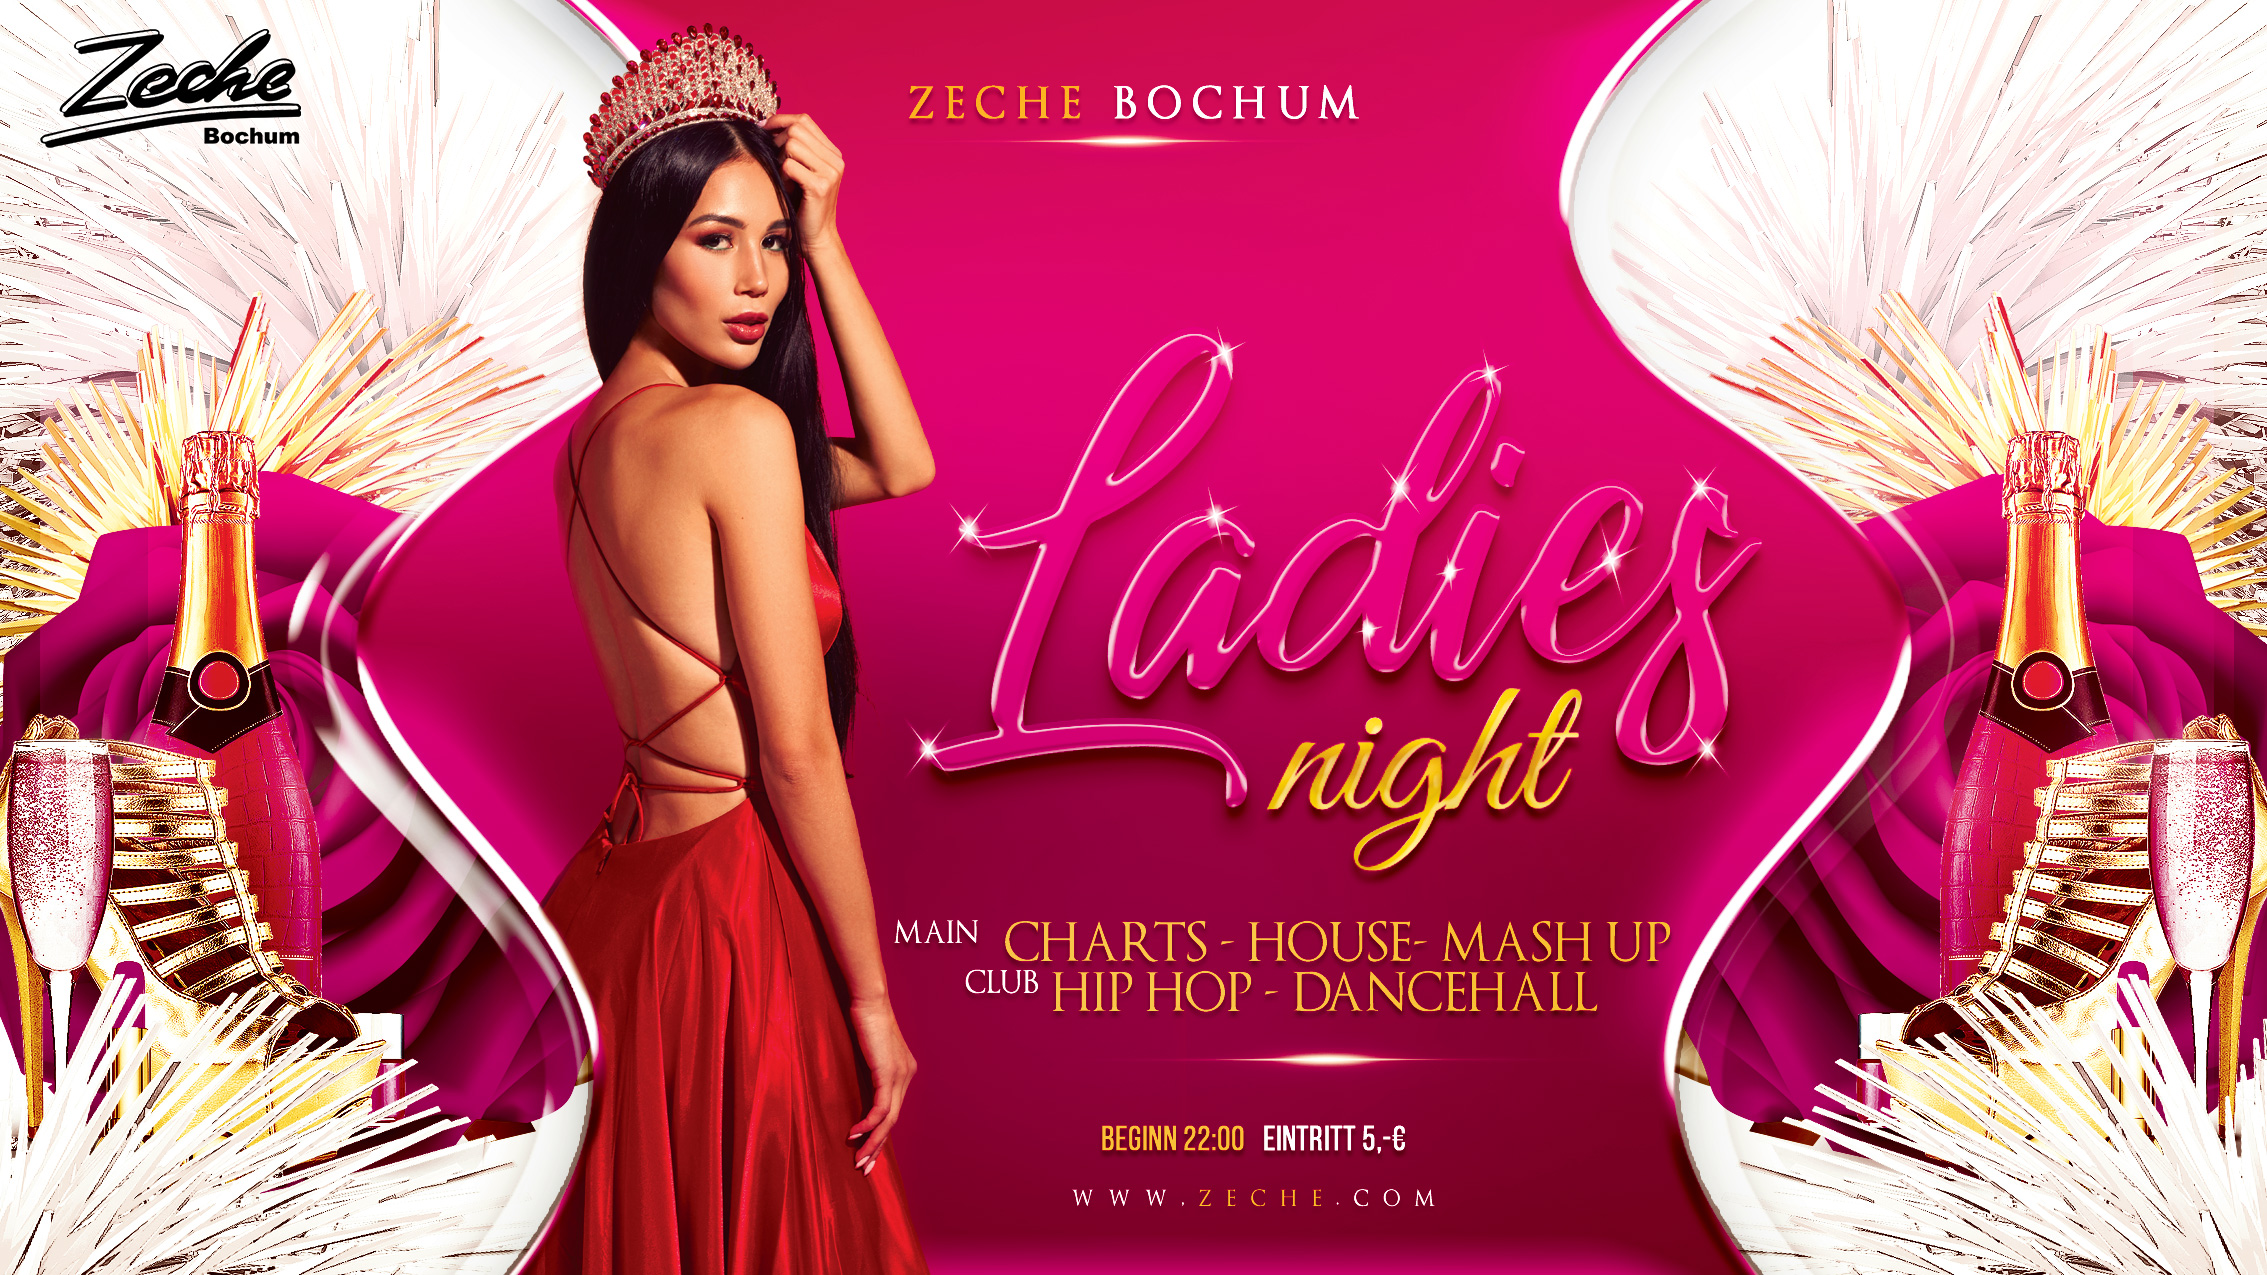 LADIES NIGHT - fällt aus